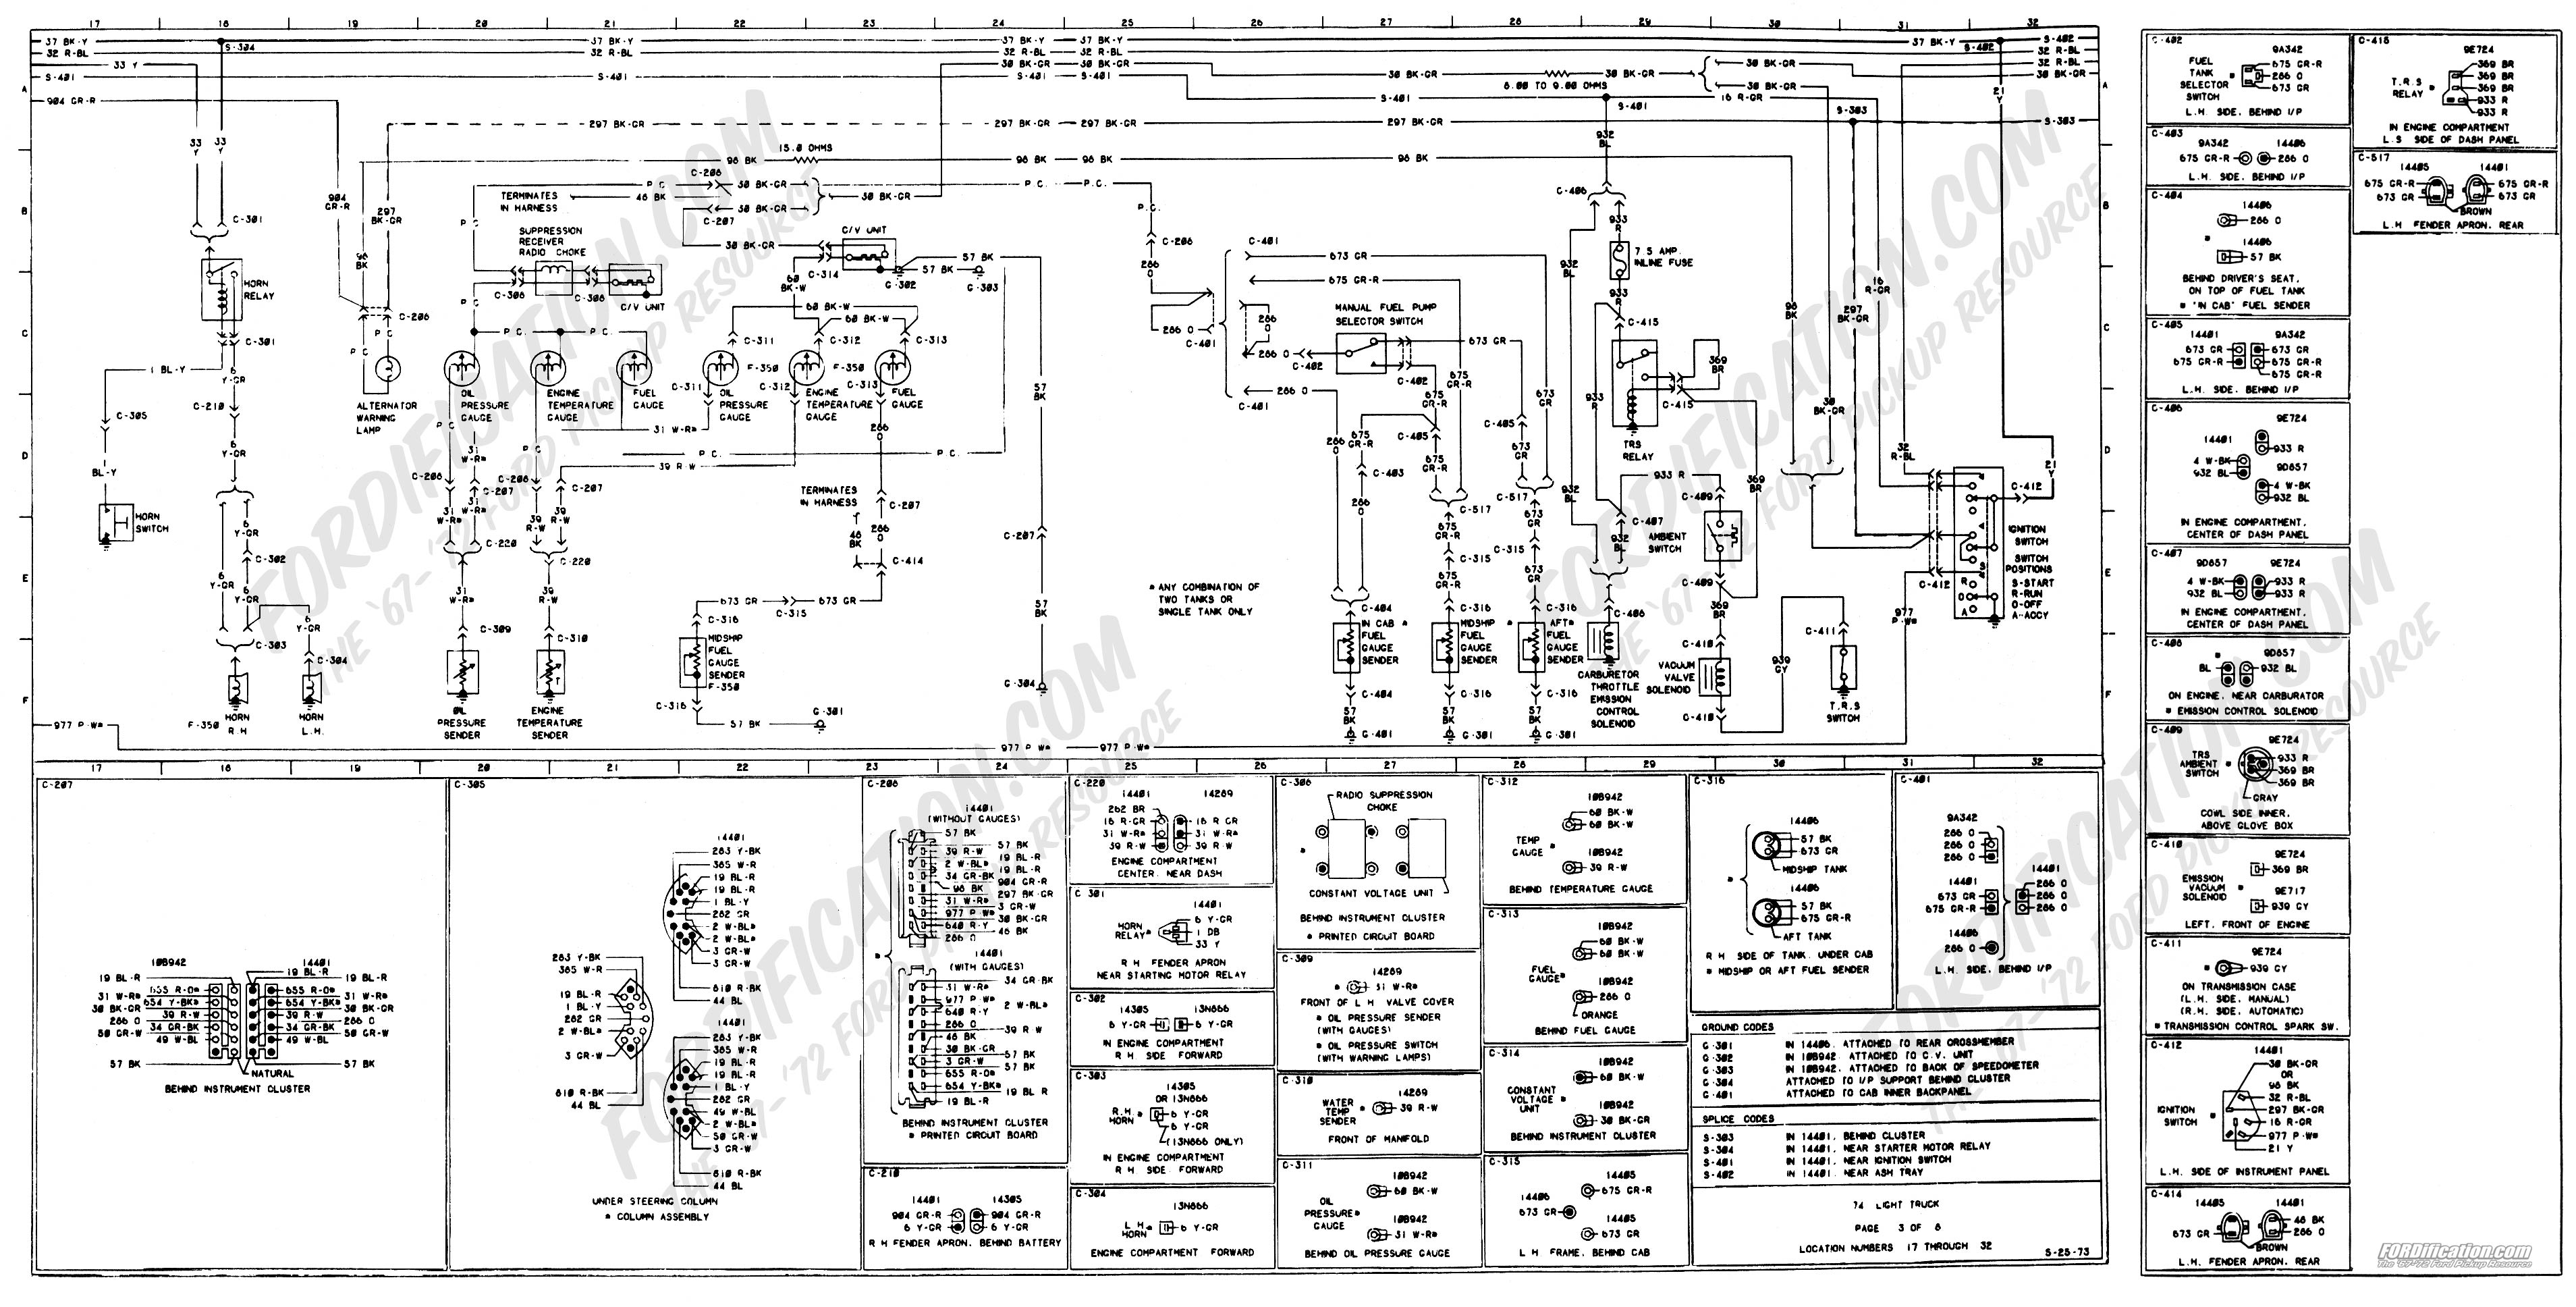 wiring_74master_3of8 1973 1979 ford truck wiring diagrams & schematics fordification net electrical wiring diagram ford courier at gsmportal.co